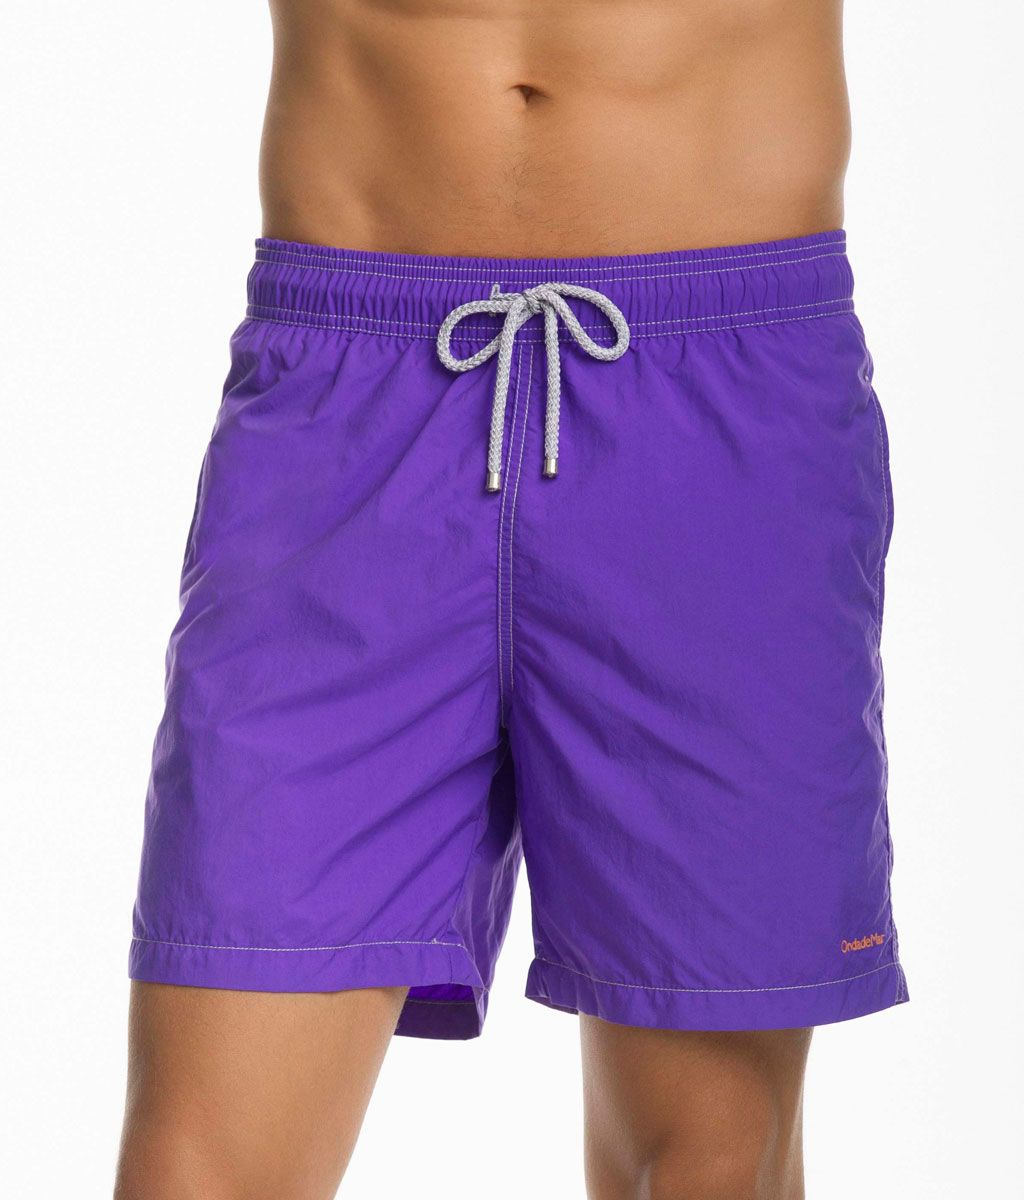 purple swim trunks mens | SEA PURPLE SURF SHORTS - ONDADEMAR MENS ...